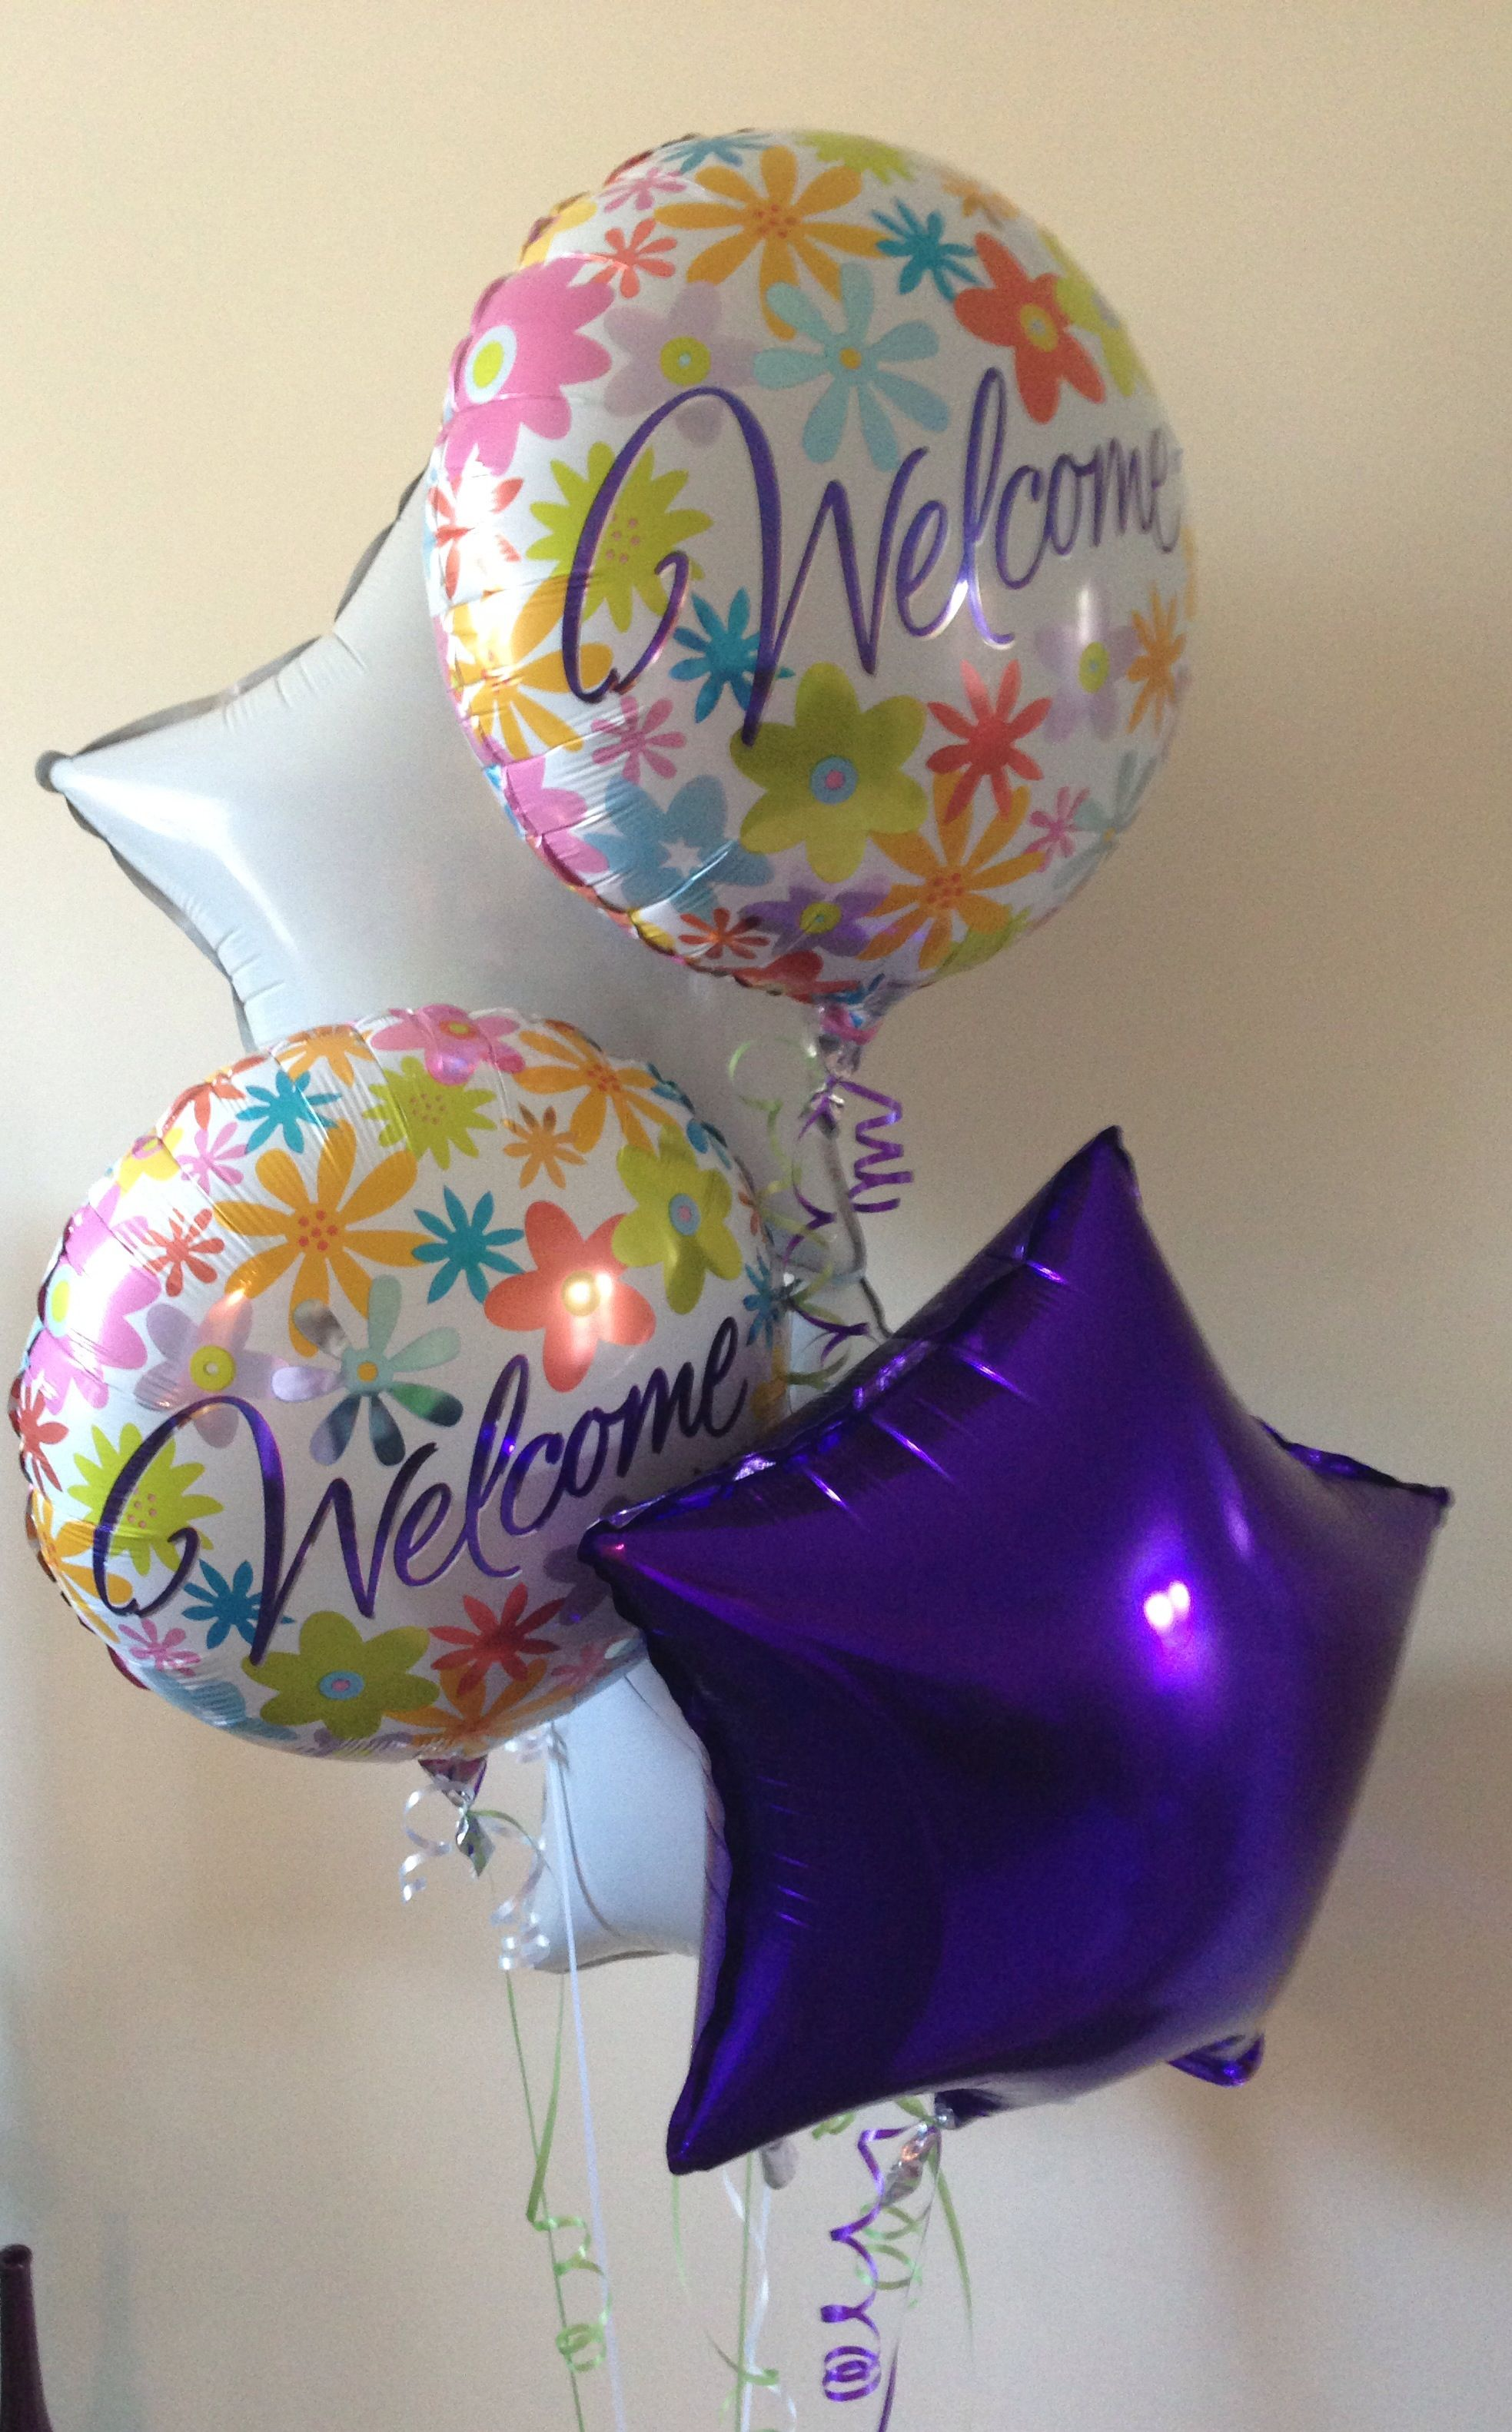 Balloon bouquet is a fun and long lasting gift